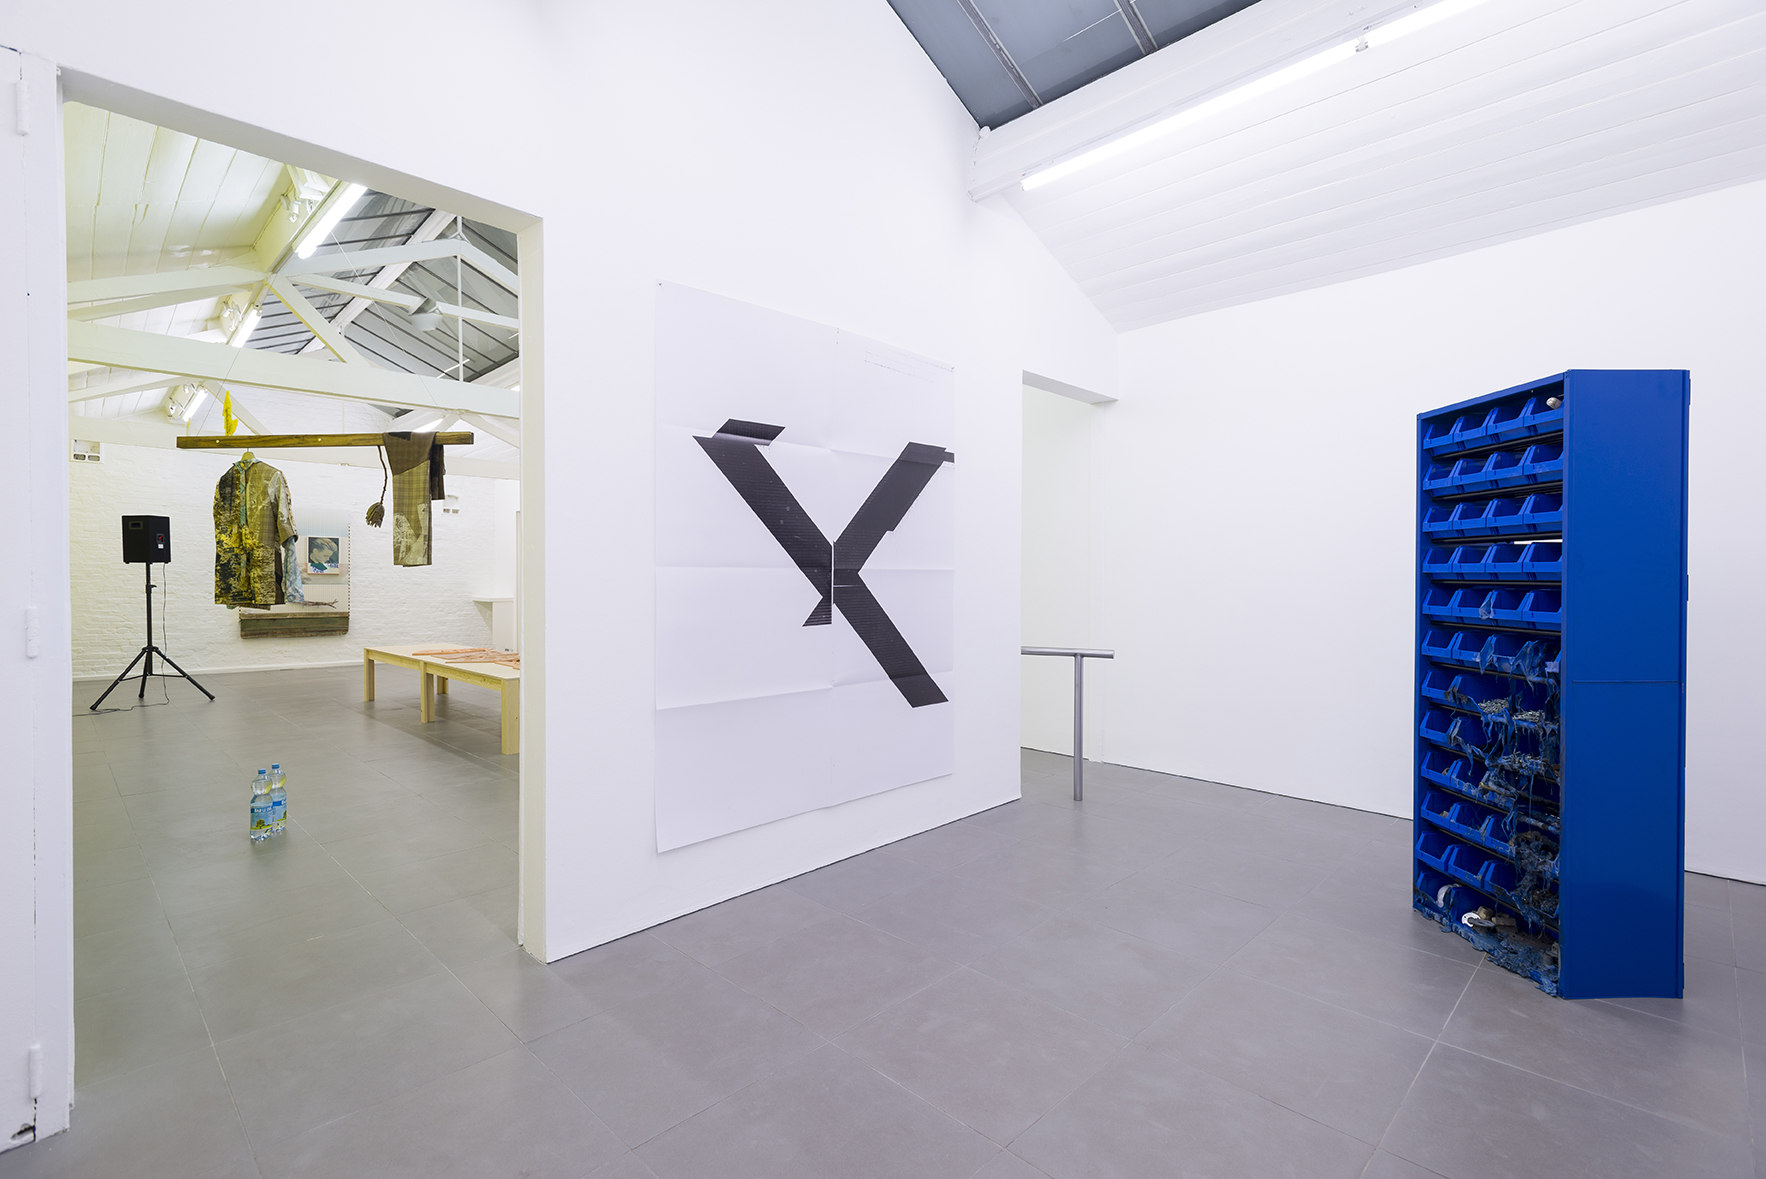 from left: Bas Van Den Hurk, Untitled, 2013, mixed media,  w. 170cm  x l. 55cm x h. variable, Wade Guyton Angled, 2013, Silk screen Print, 61 cm x 92 cm x 1.3 cm, Matias Faldbakken, Parts Cabinet, 2013, metal cabinet, plastic bins, screws, bolts miscellan